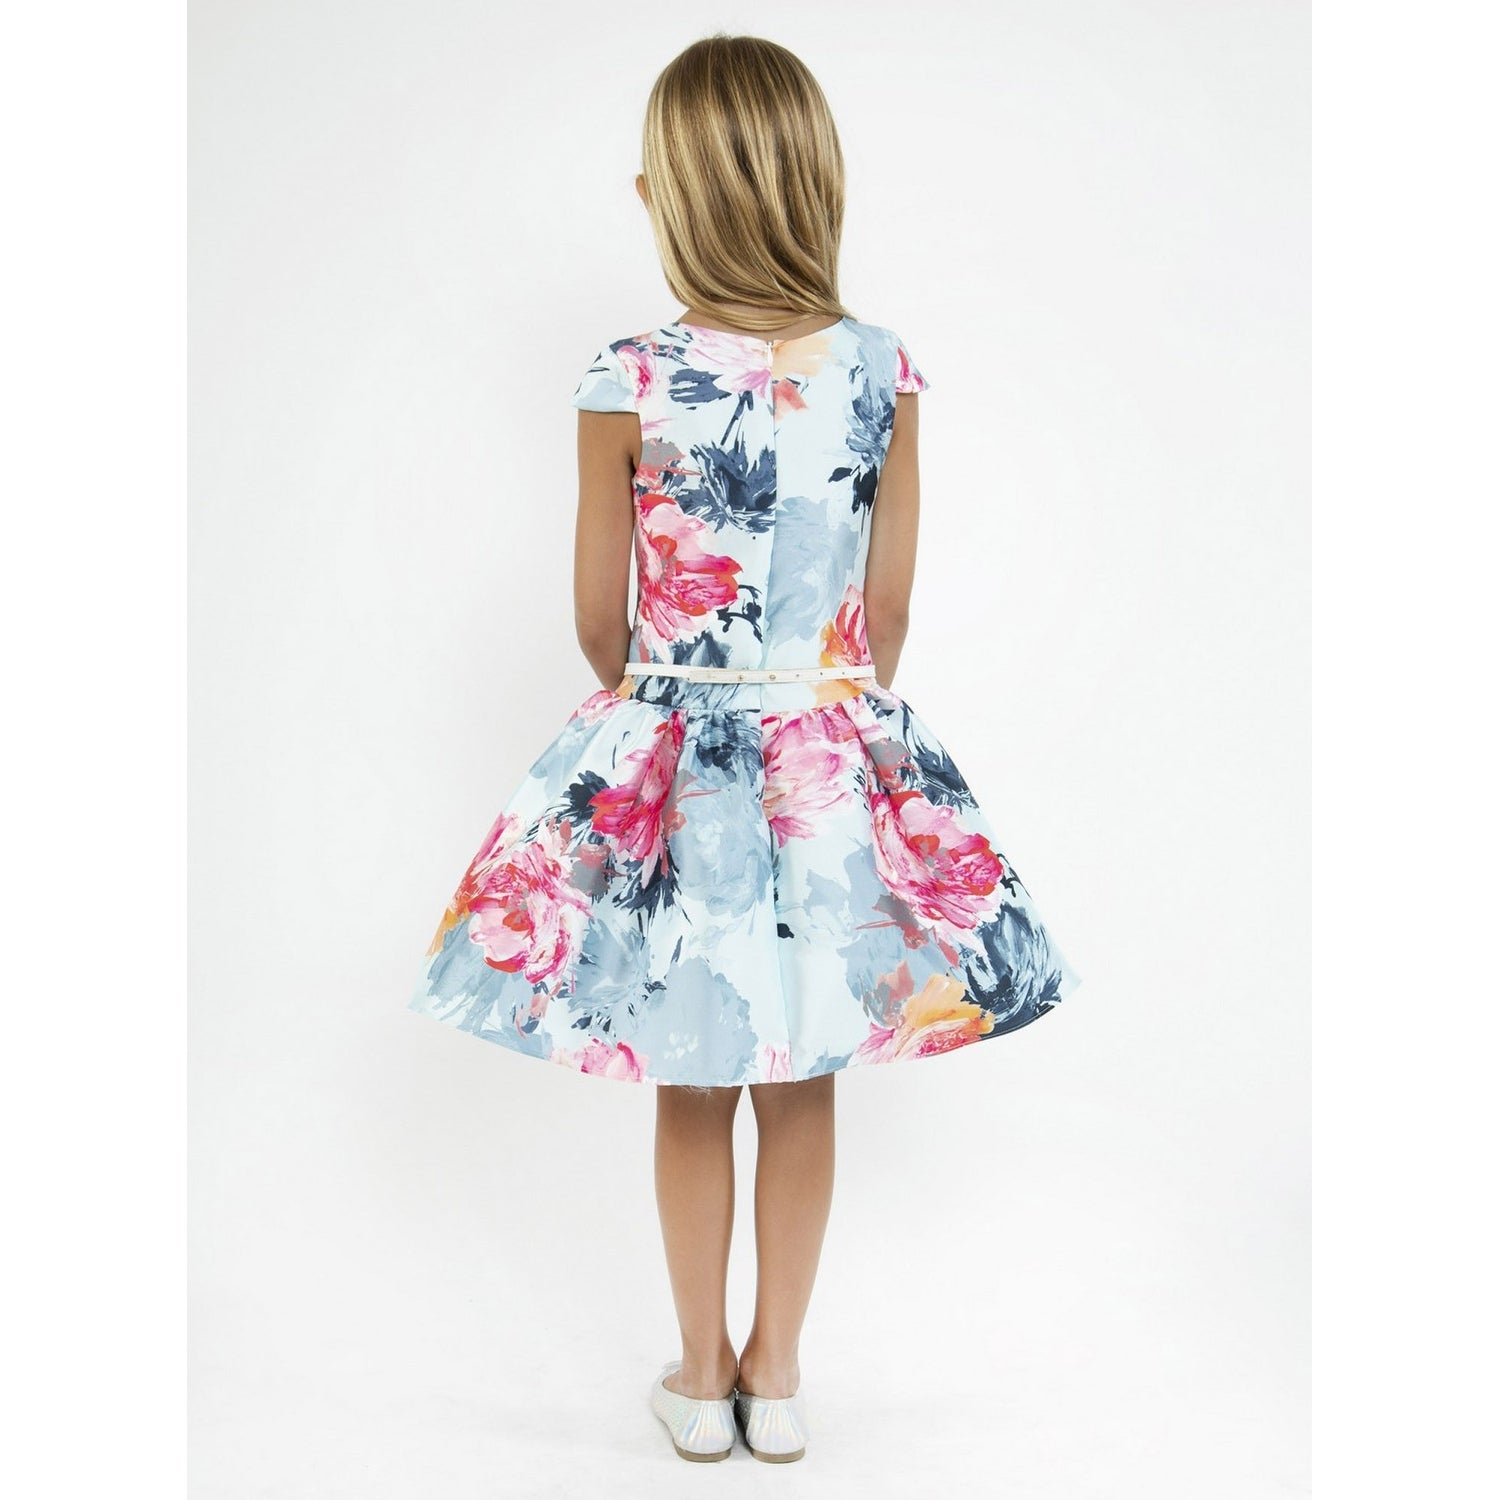 078c33850b4 Shop Kids Dream Girls Baby Blue Floral Mikado Junior Bridesmaid Dress -  Free Shipping Today - Overstock - 23159691